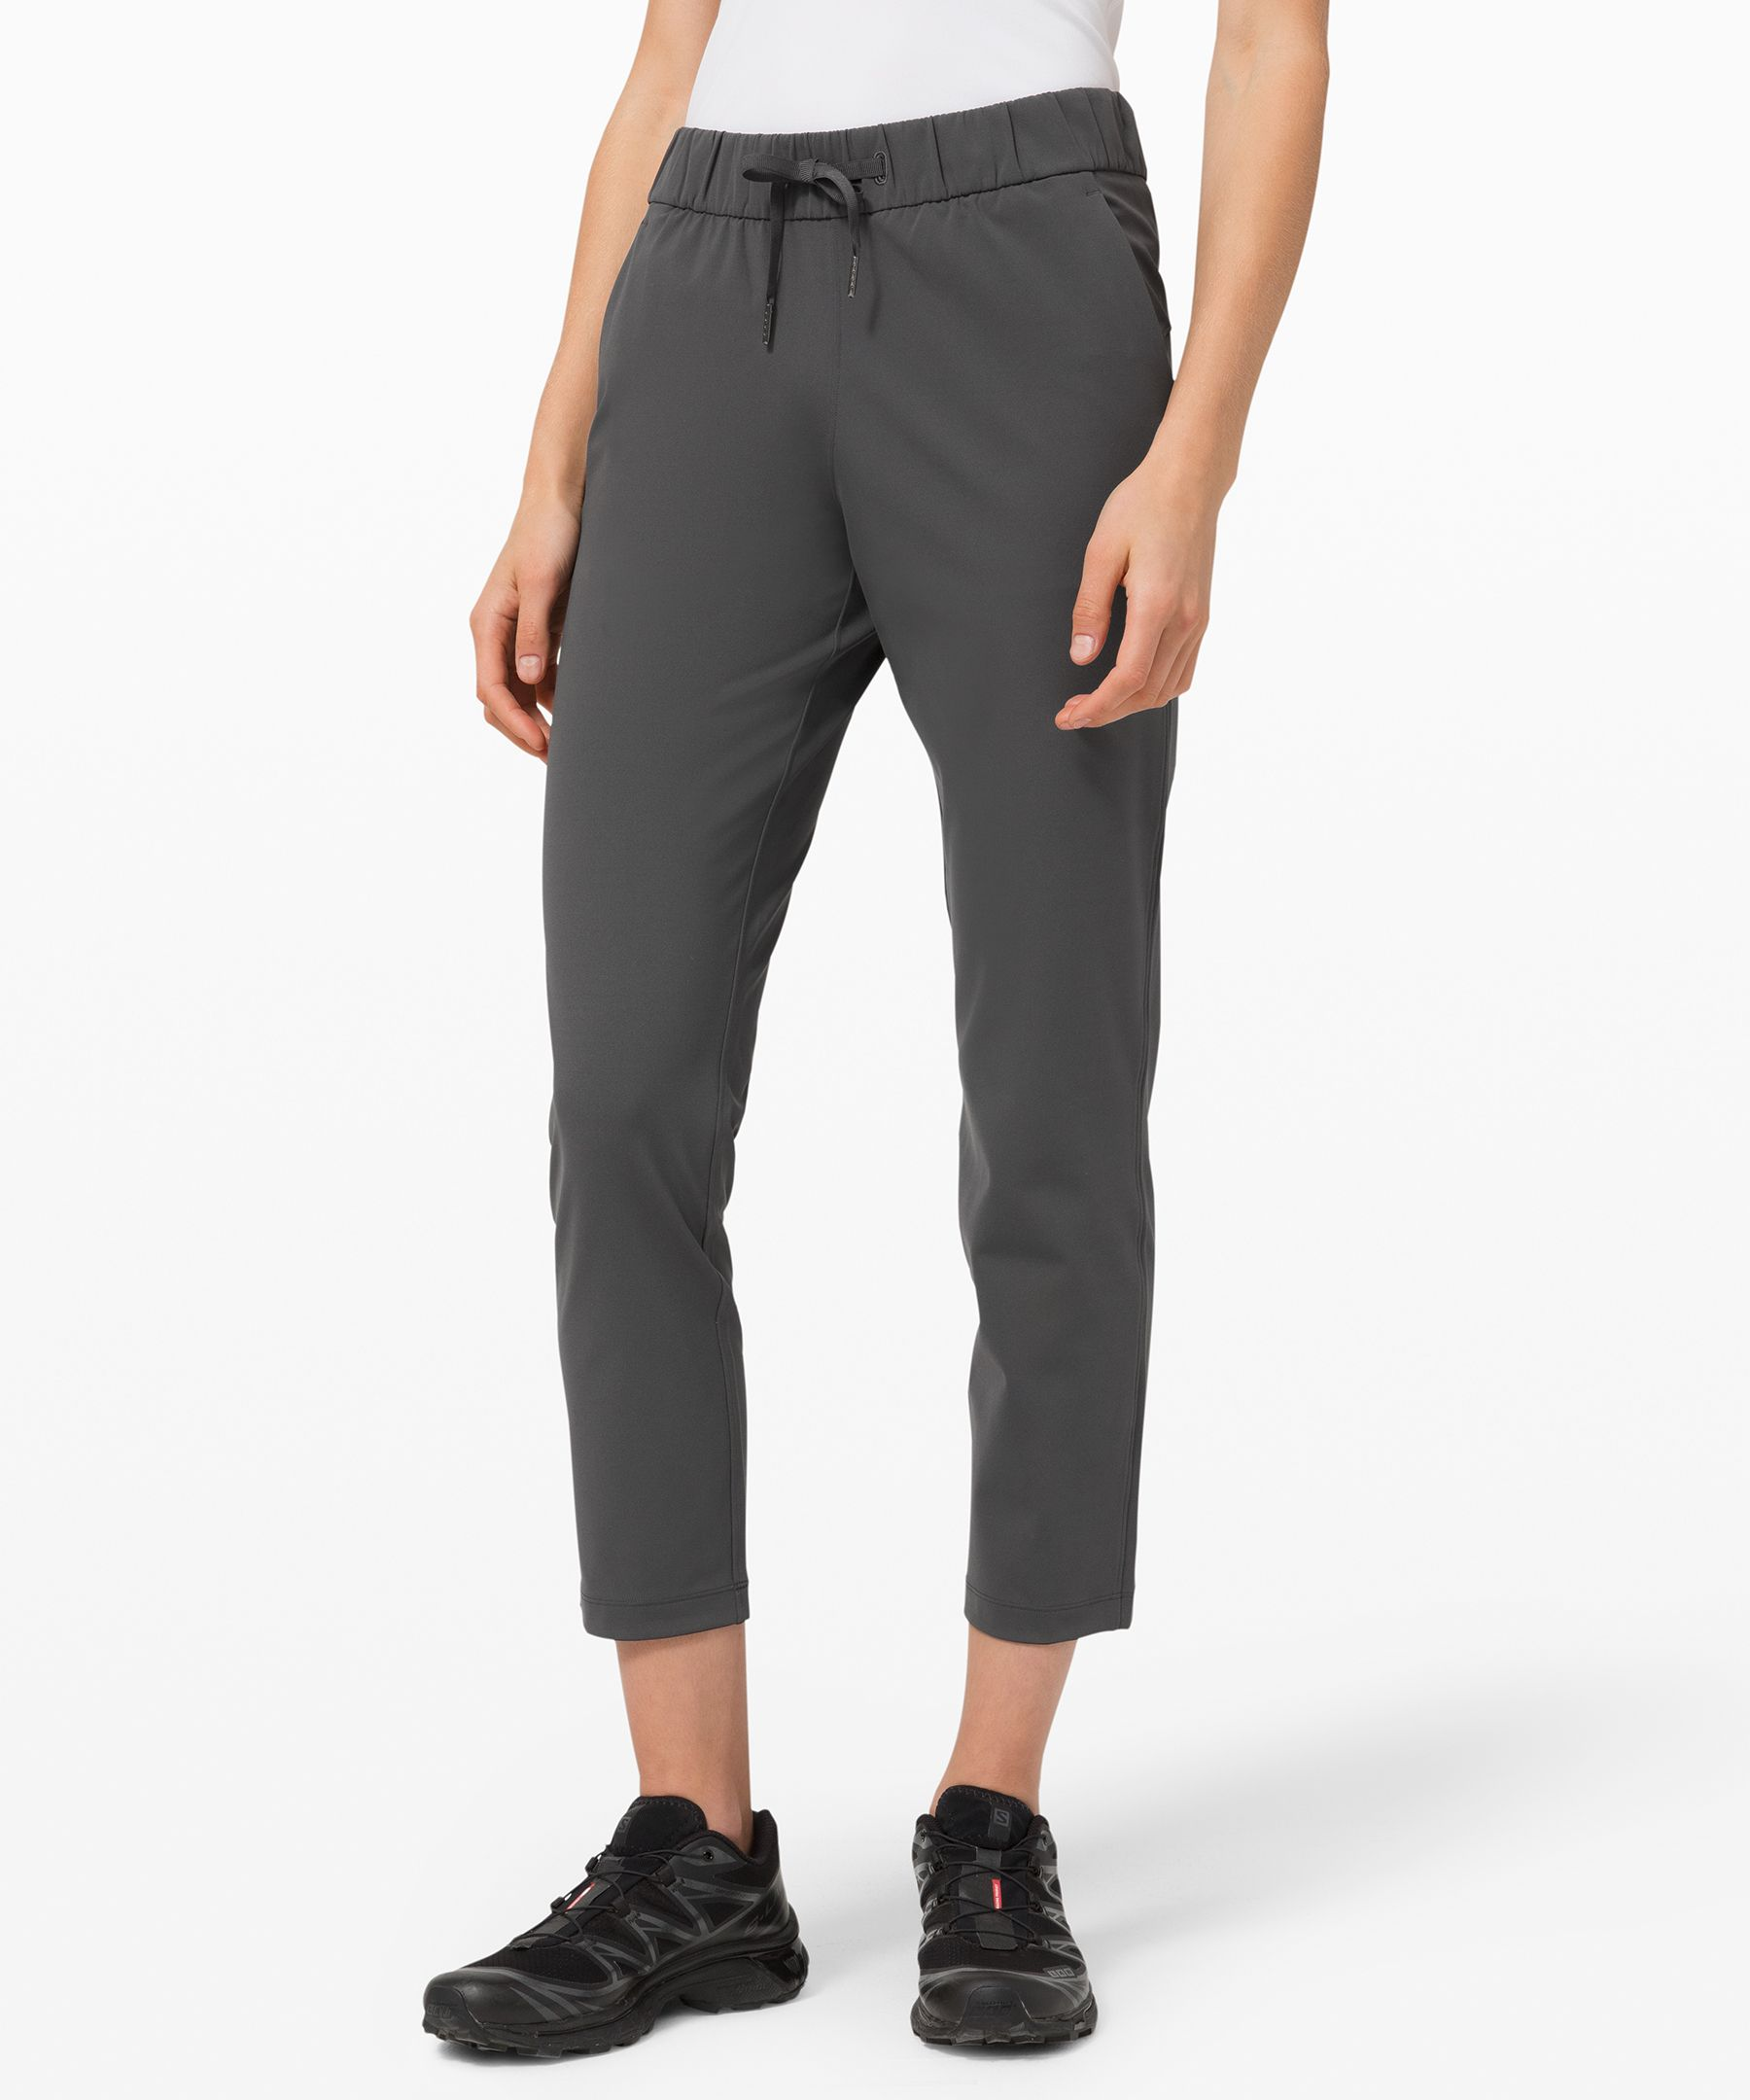 On the Fly 7/8 Pant